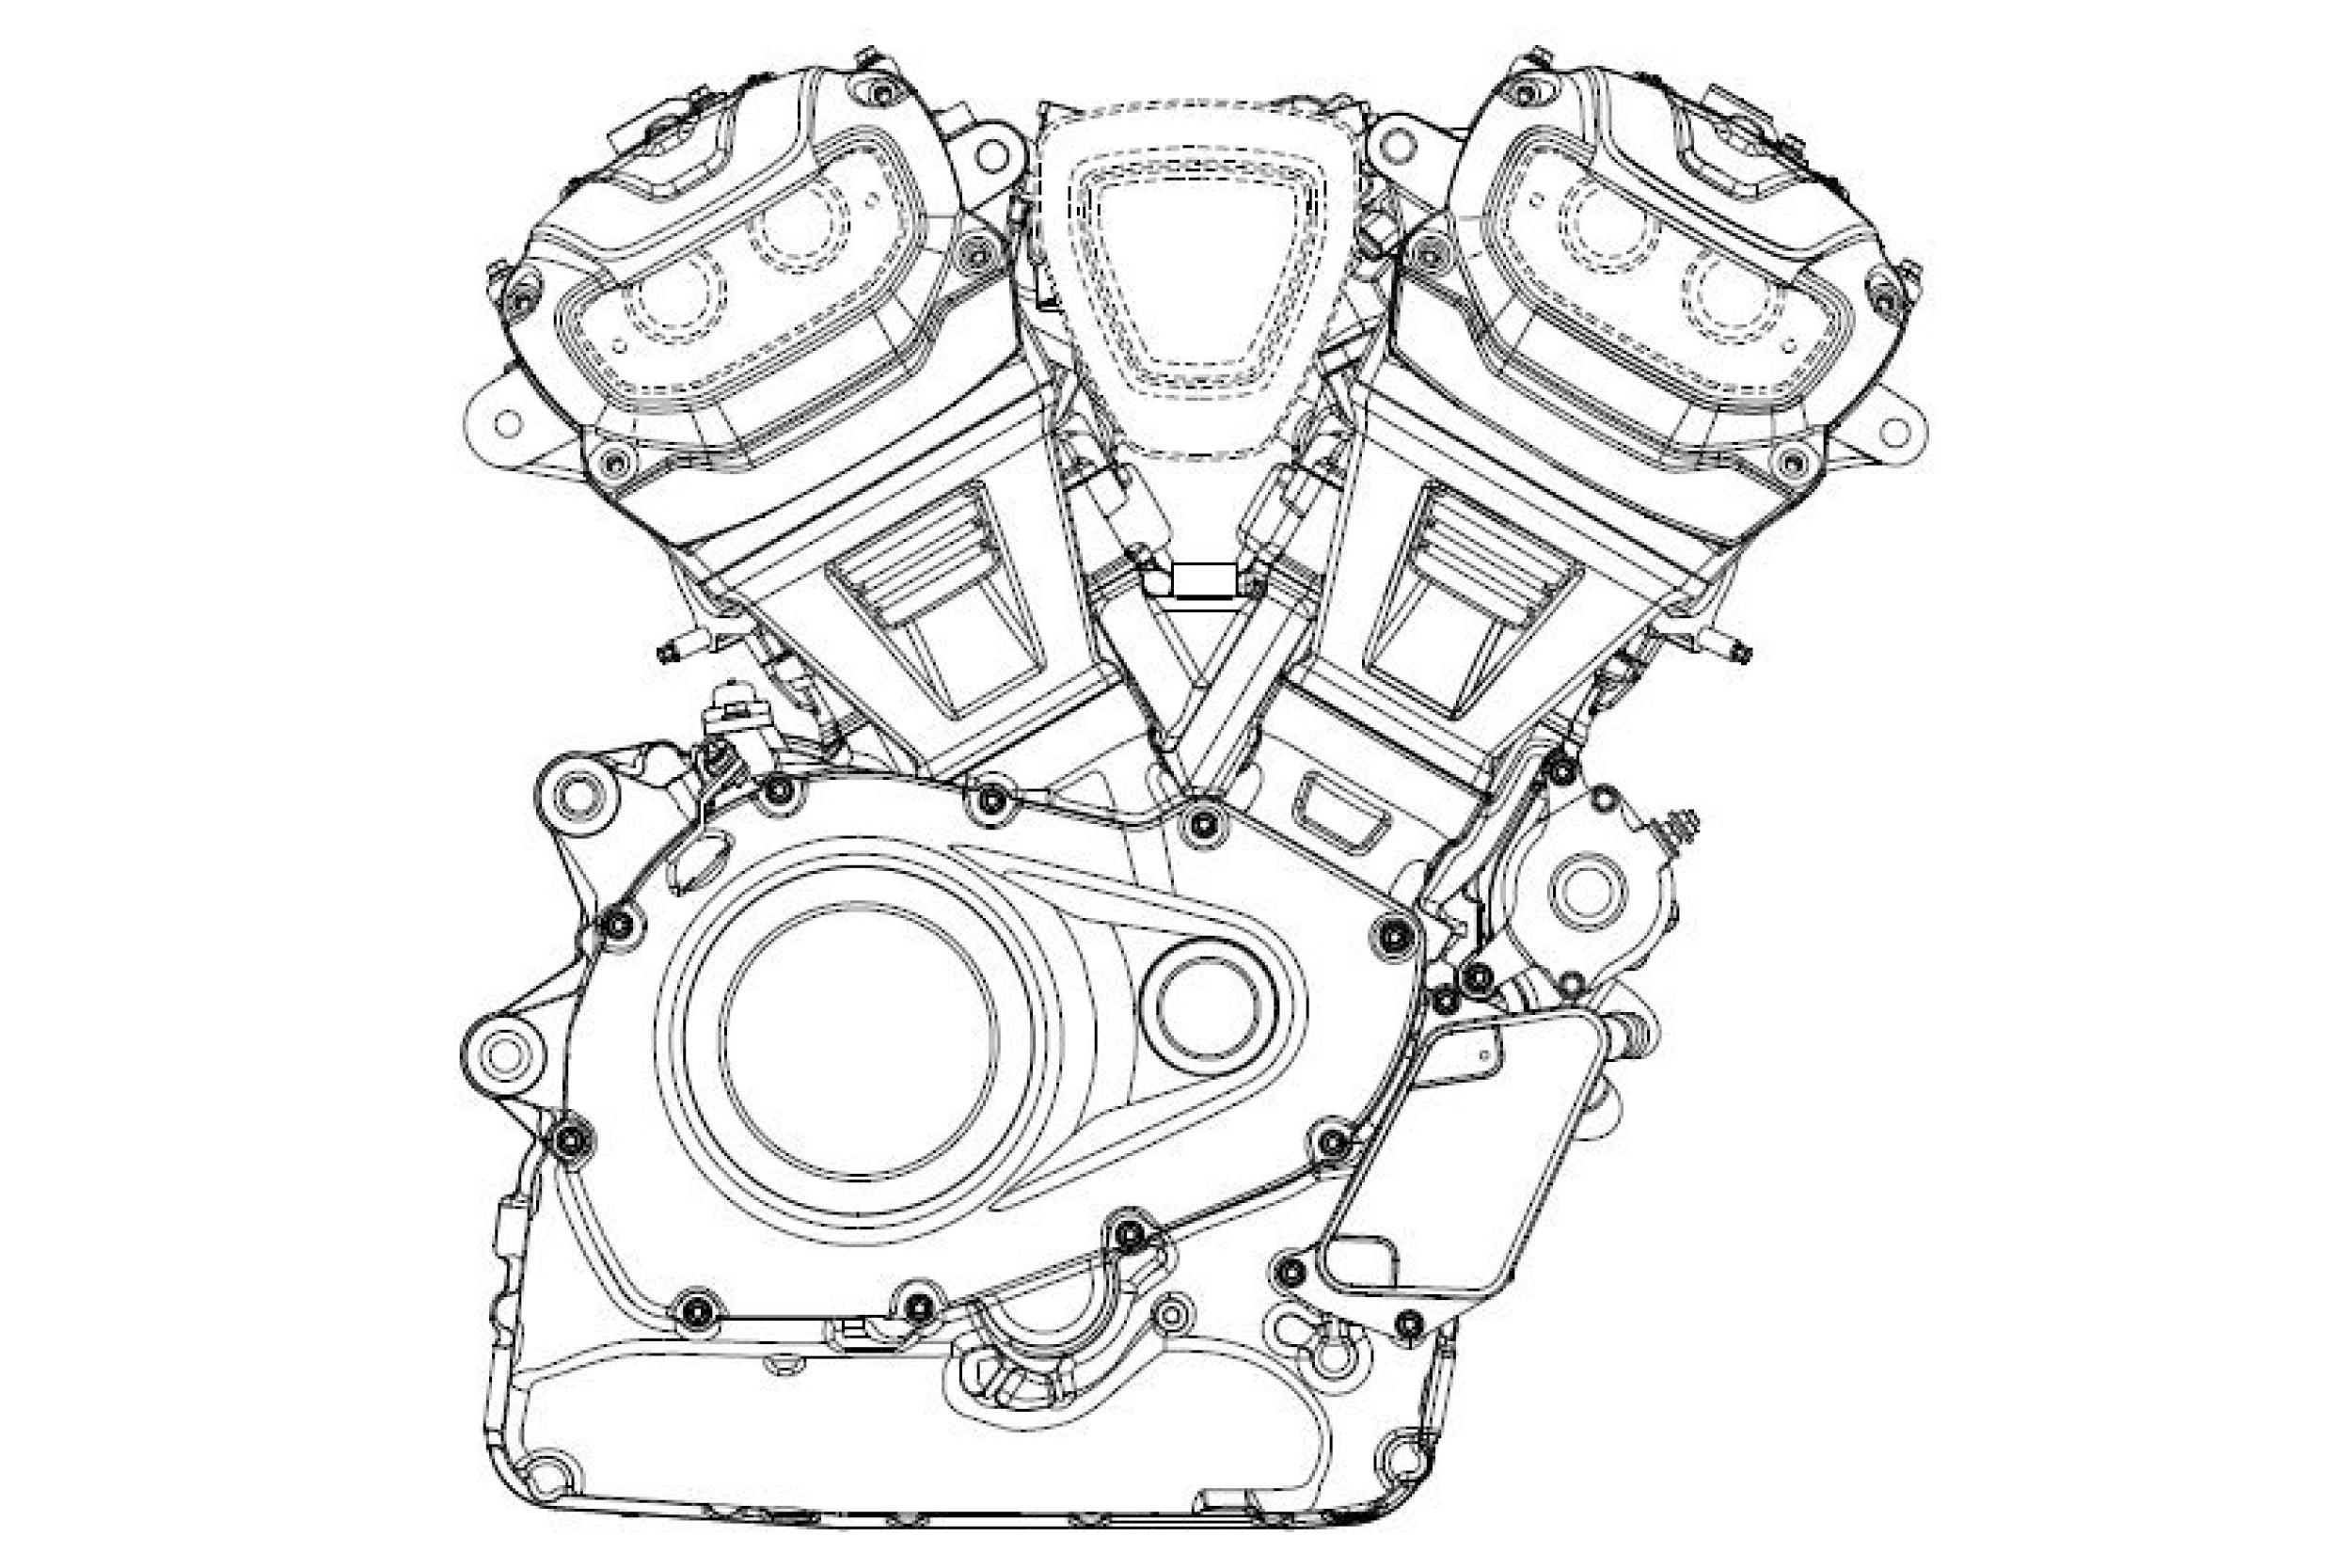 New Harley Davidson V Twin Engine Design Revealed